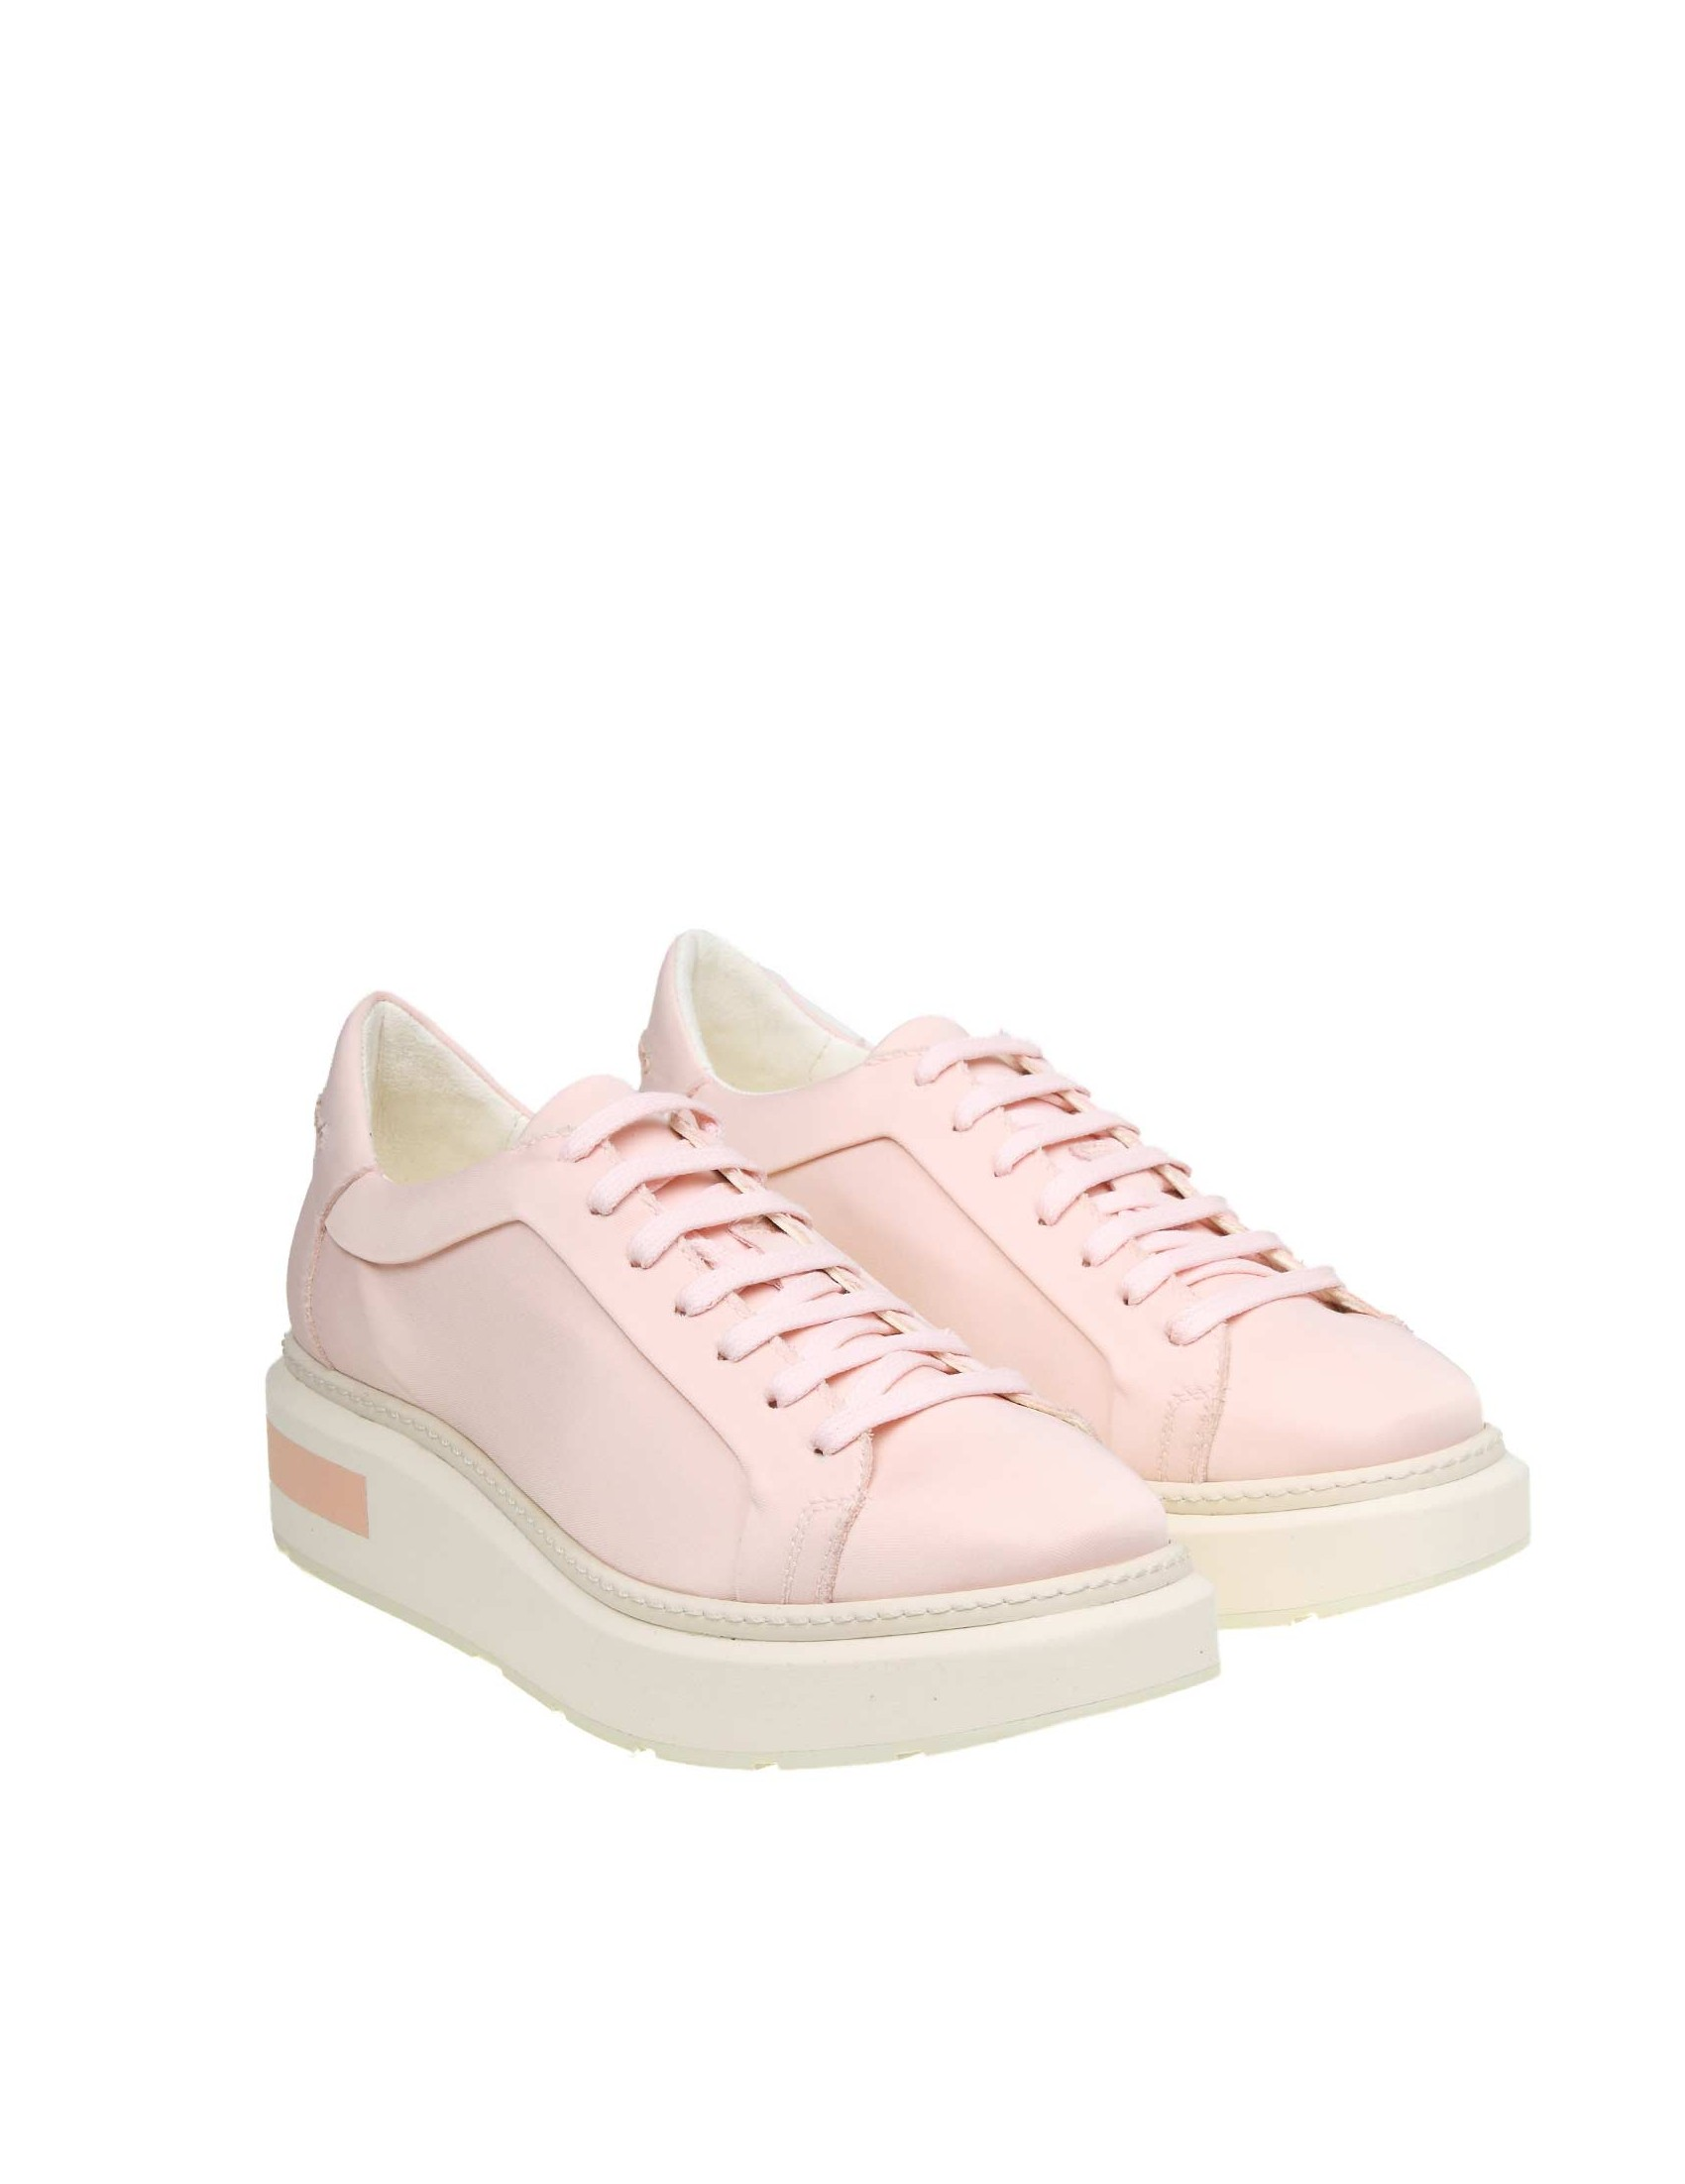 Manuel Pink In Barcelo Fabric Color 'sneakers N8wvmOn0